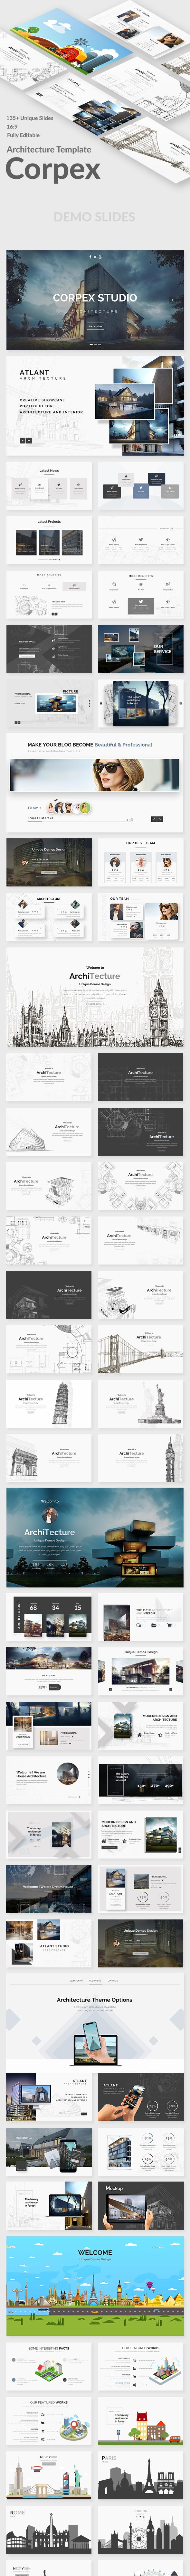 corpex architecture and construction powerpoint template by